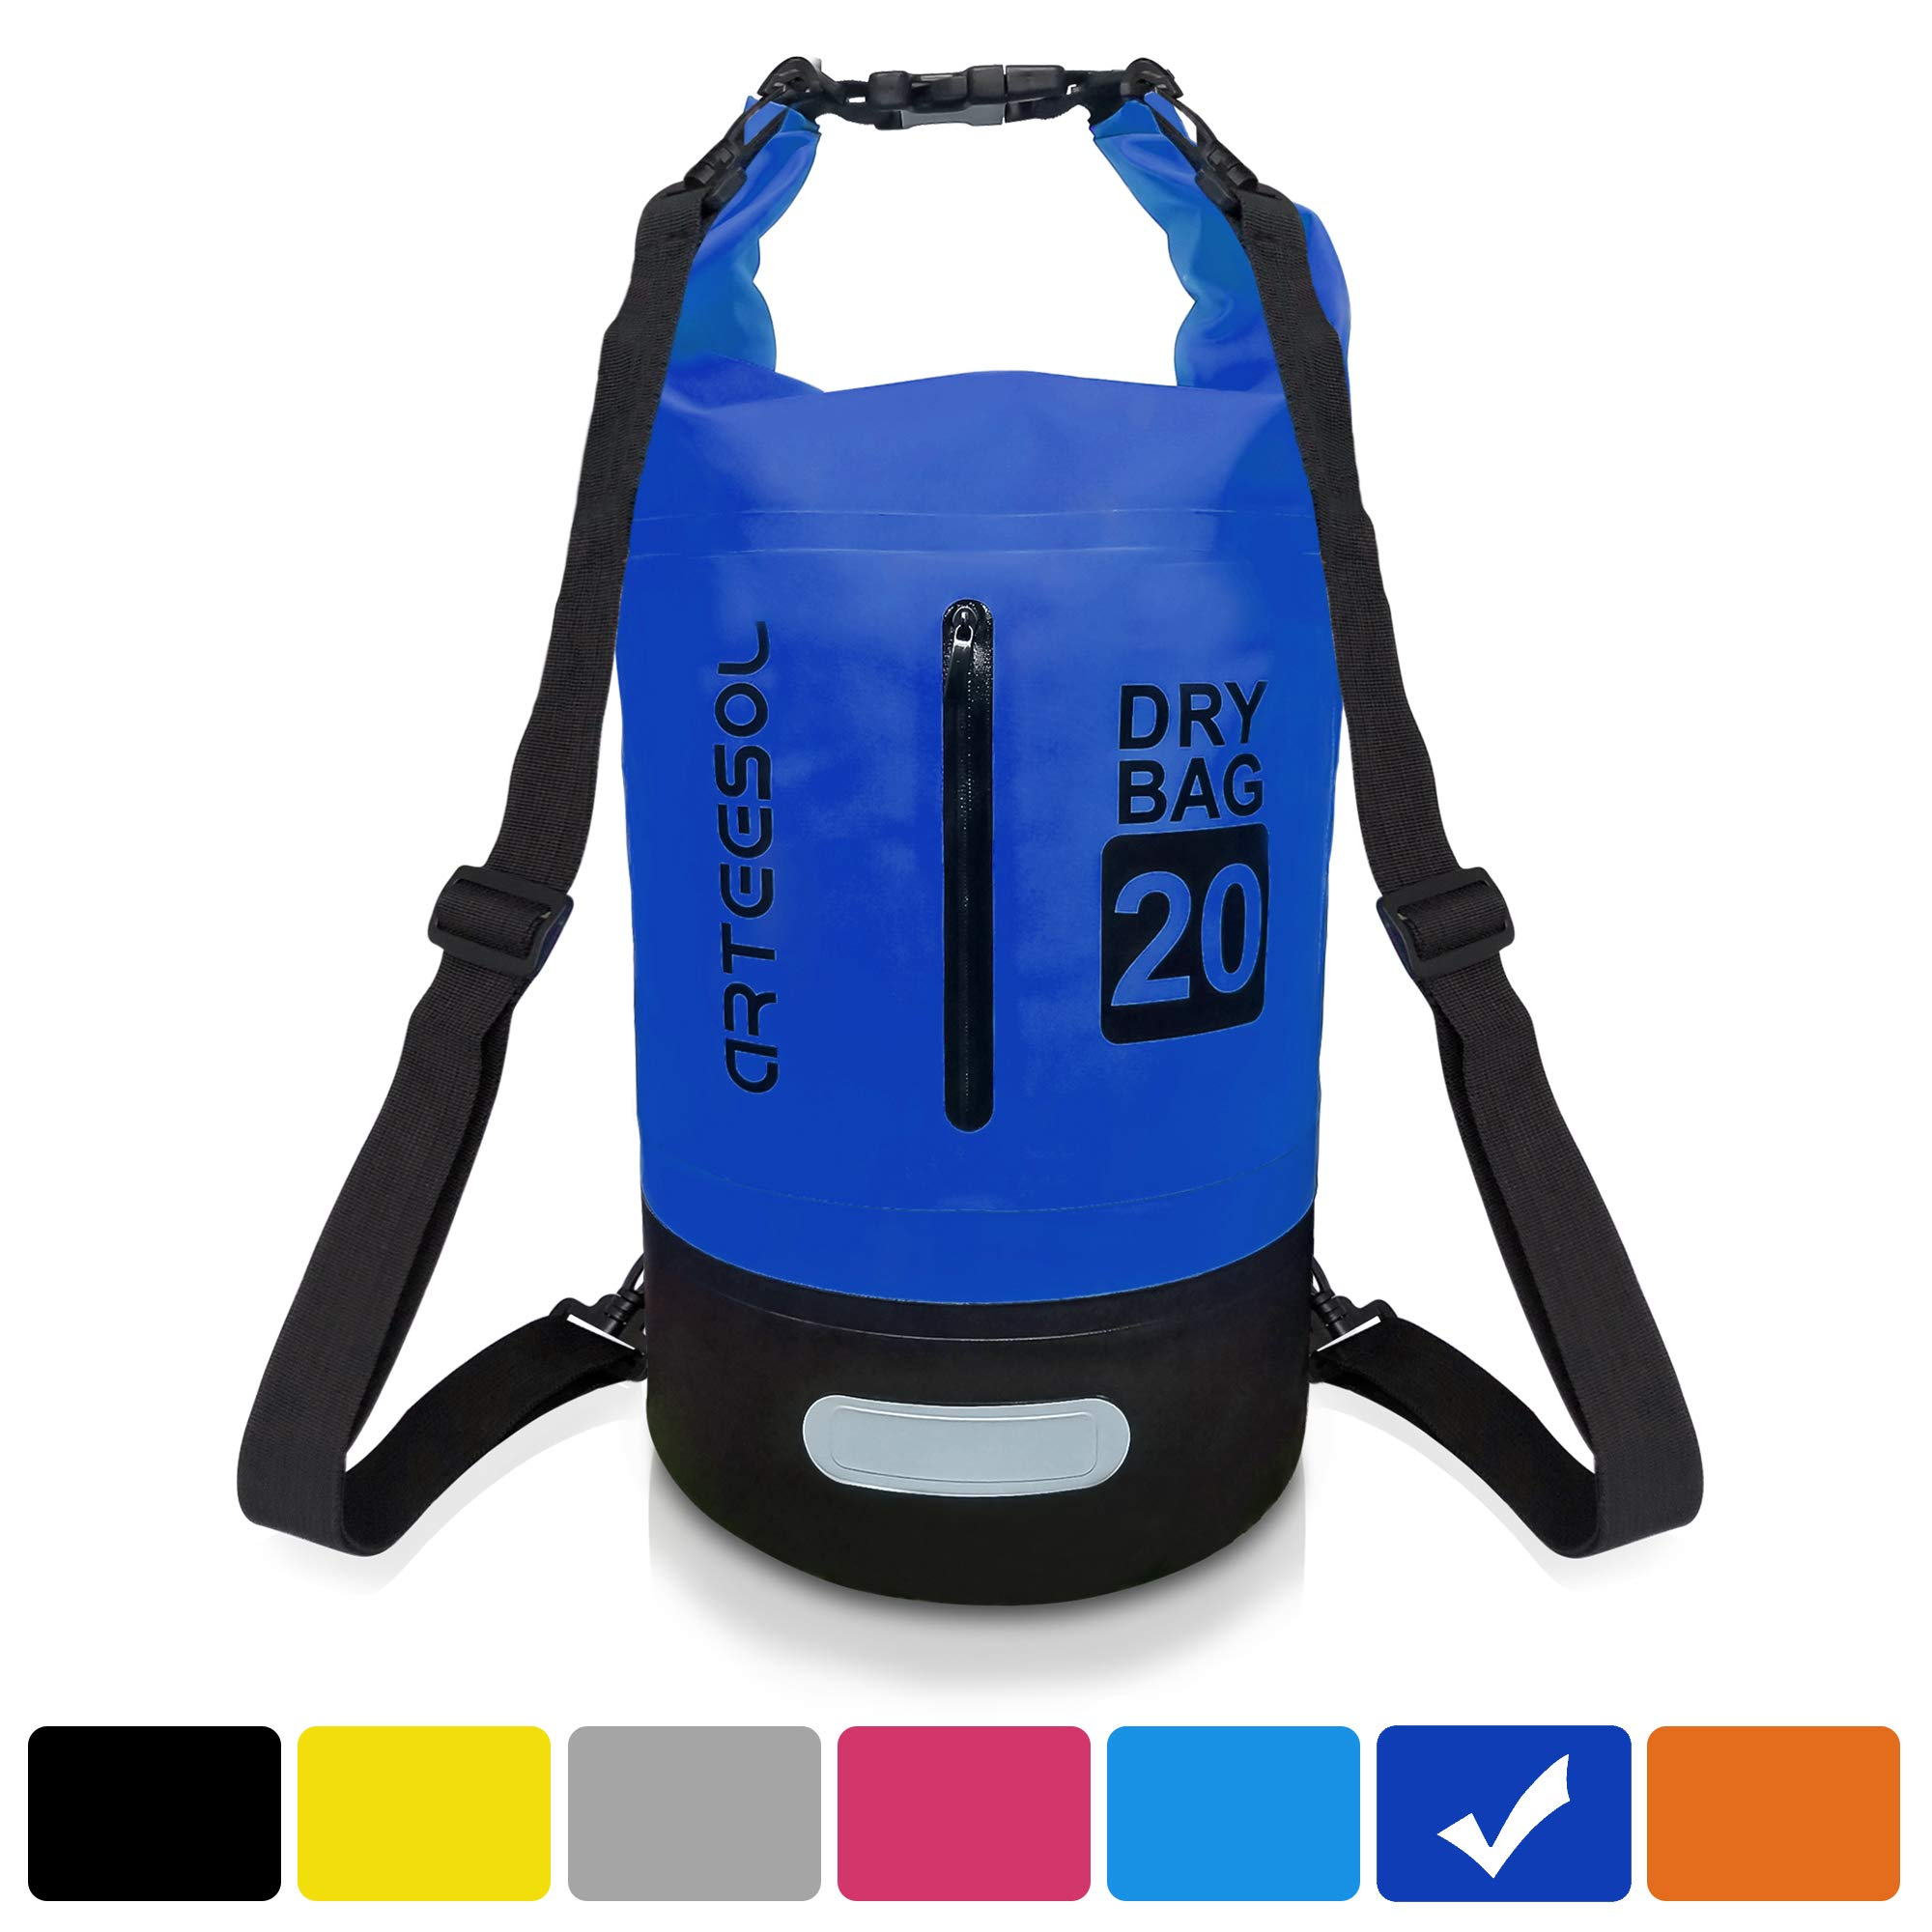 100/% Waterproof dry bag messenger bag rucksack straps 30 L Cyclists love these!